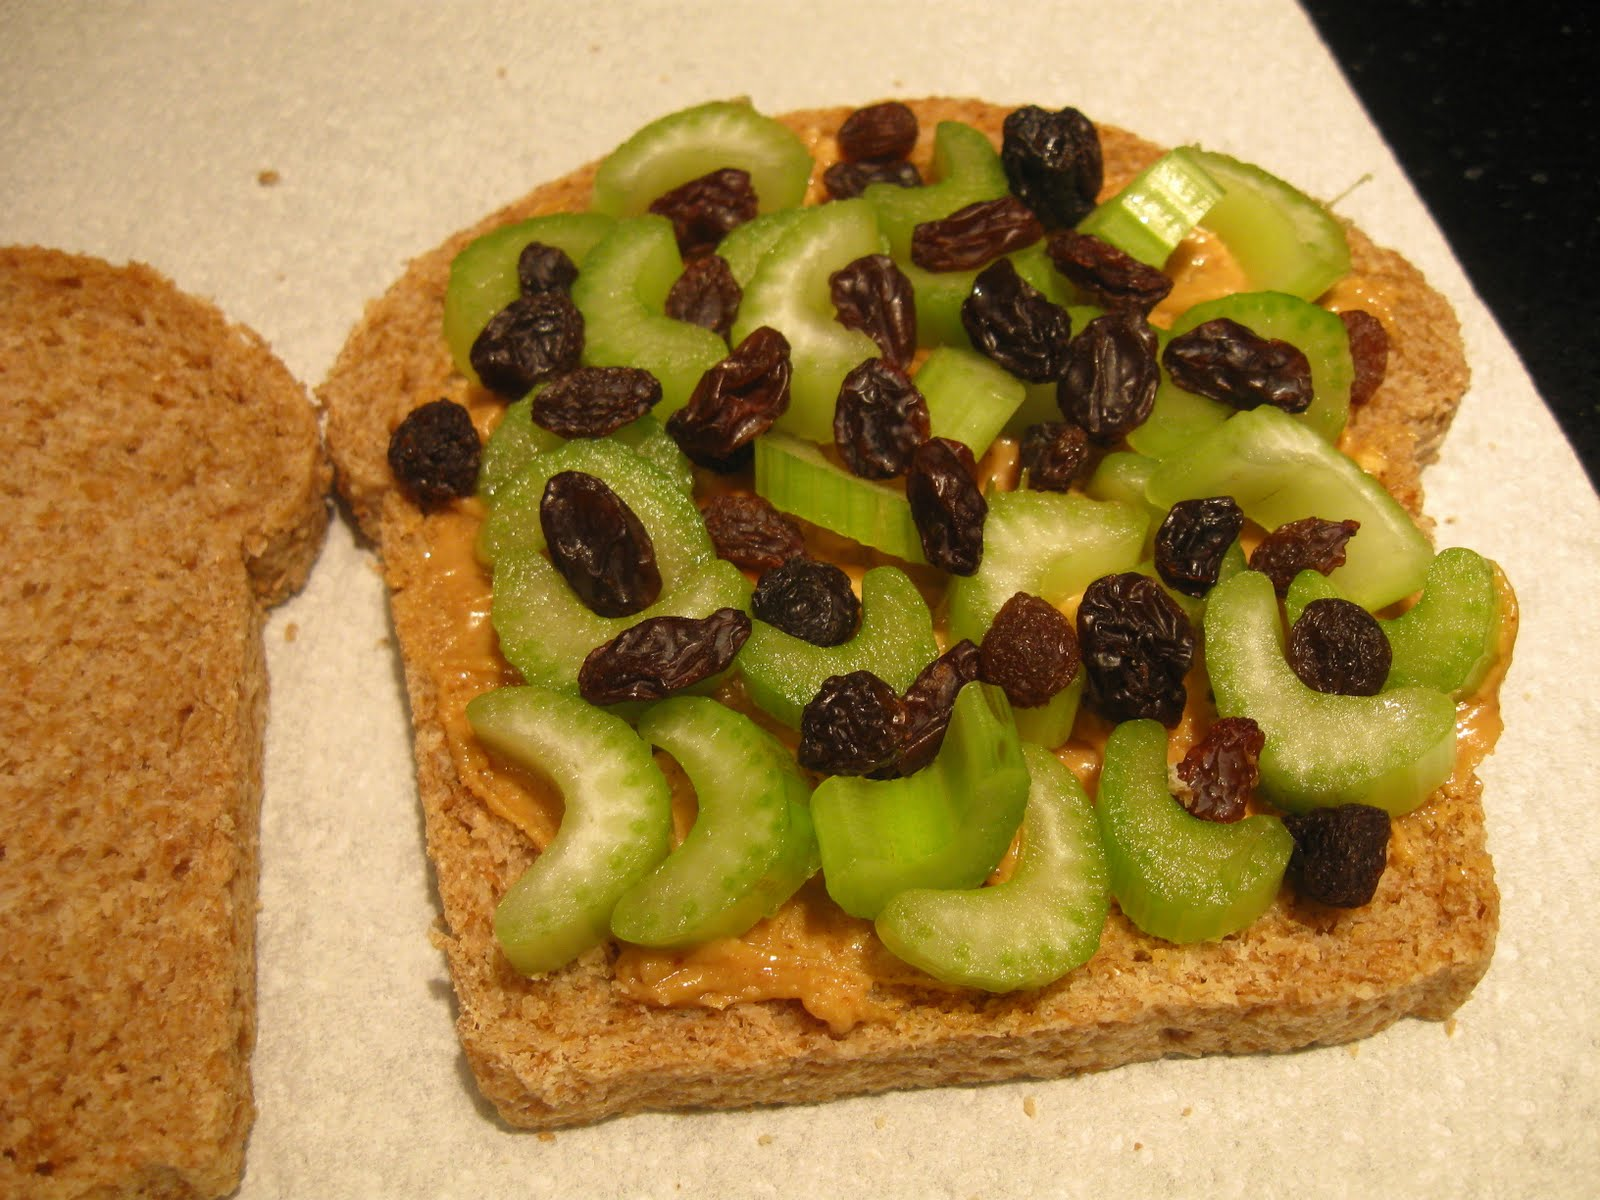 My Irritable Blog: Ode to Peanut Butter Sandwiches.